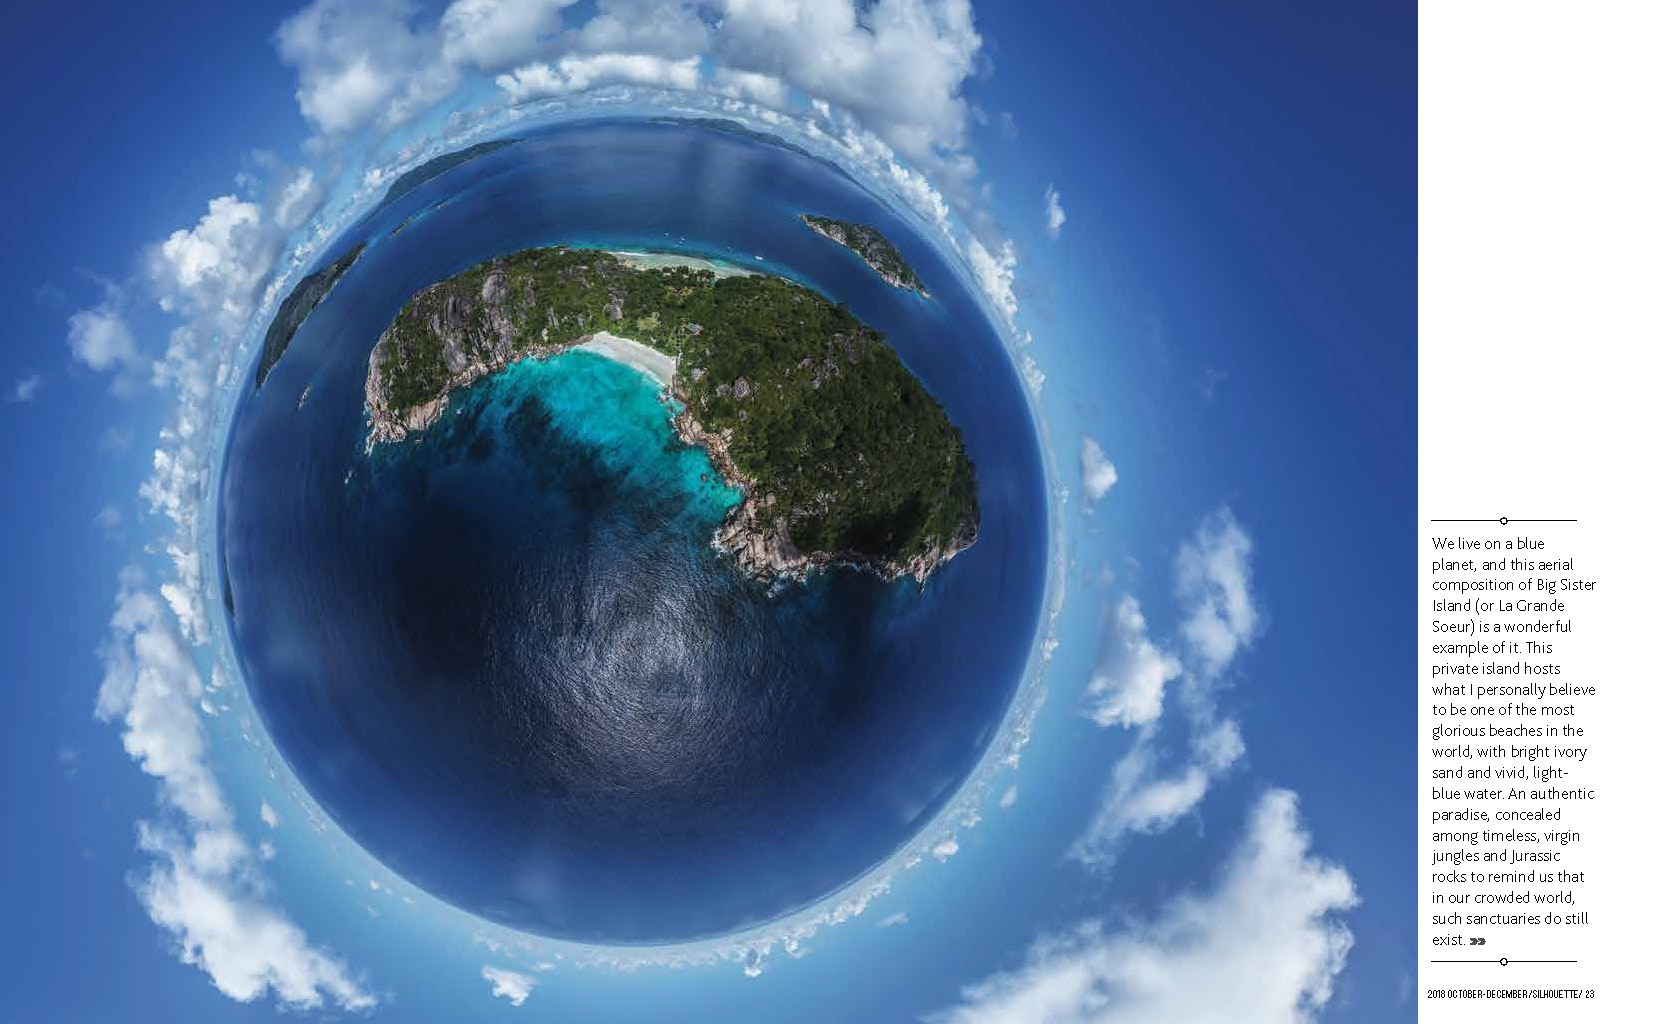 Seychelles From Above Air Seychelles Silhouette inflight magazine drone reportage enrico pescantini blue planet